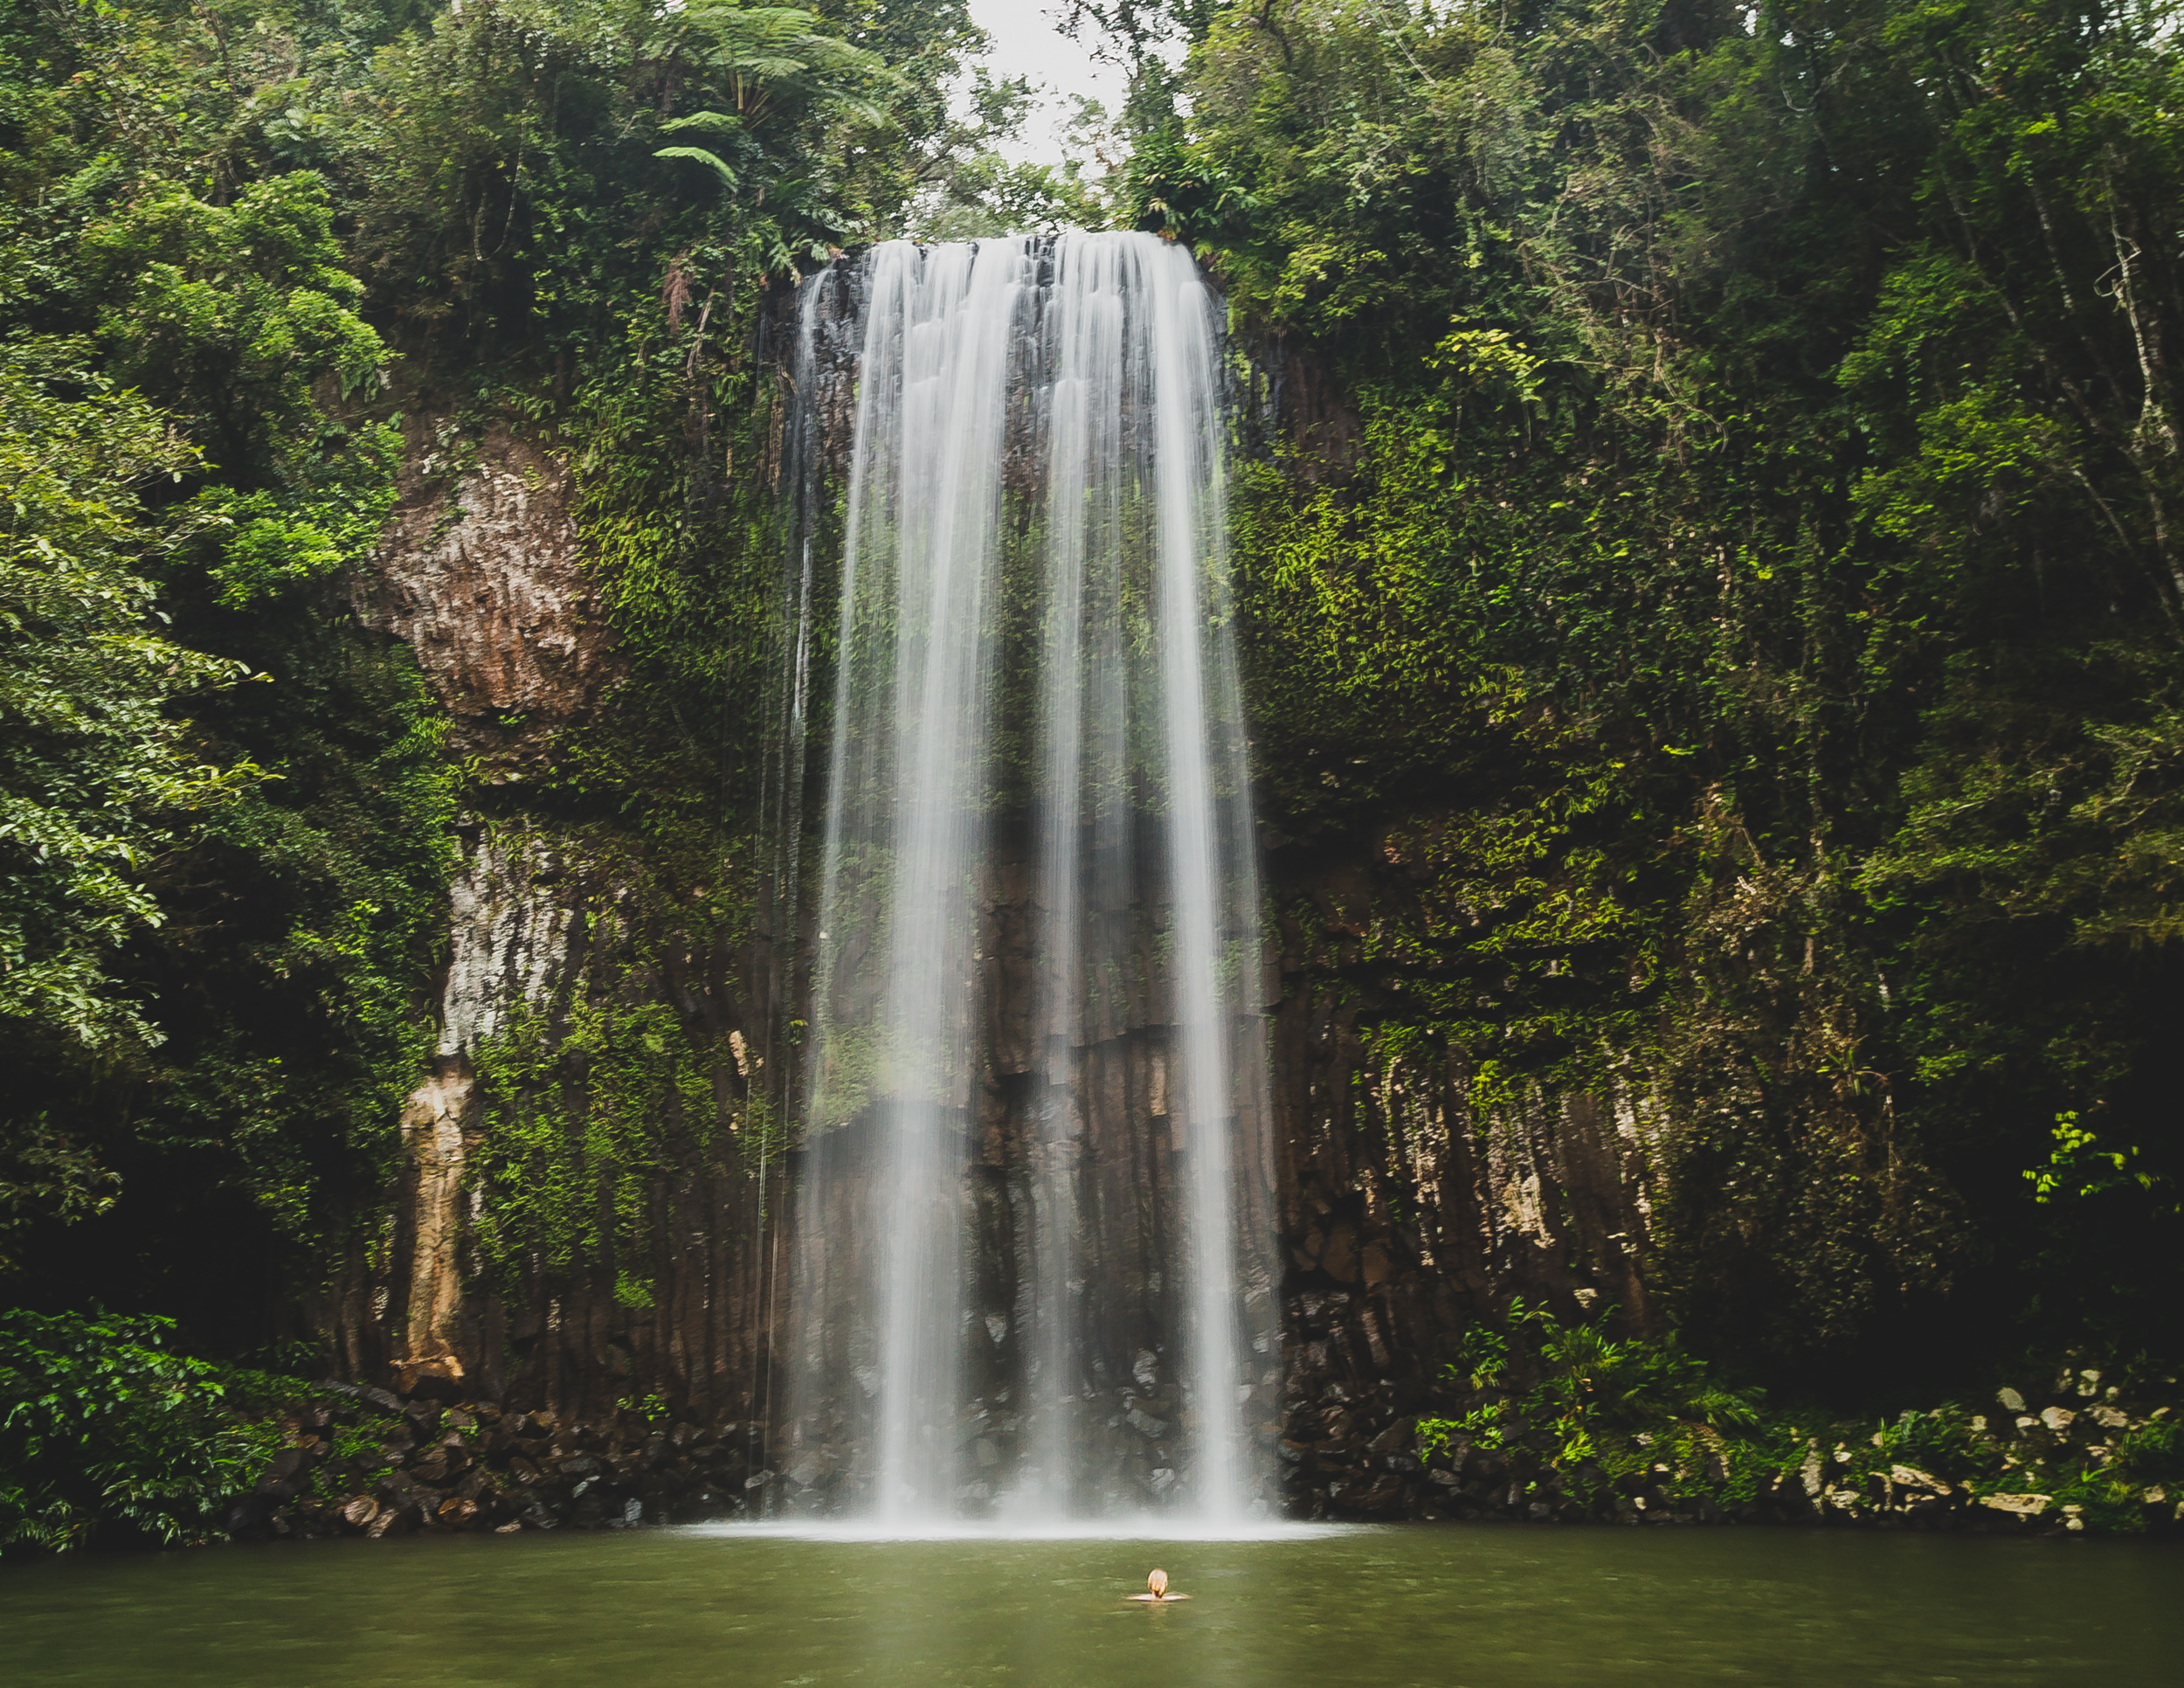 Millaa Millaa Waterfall, Cairns in Queensland